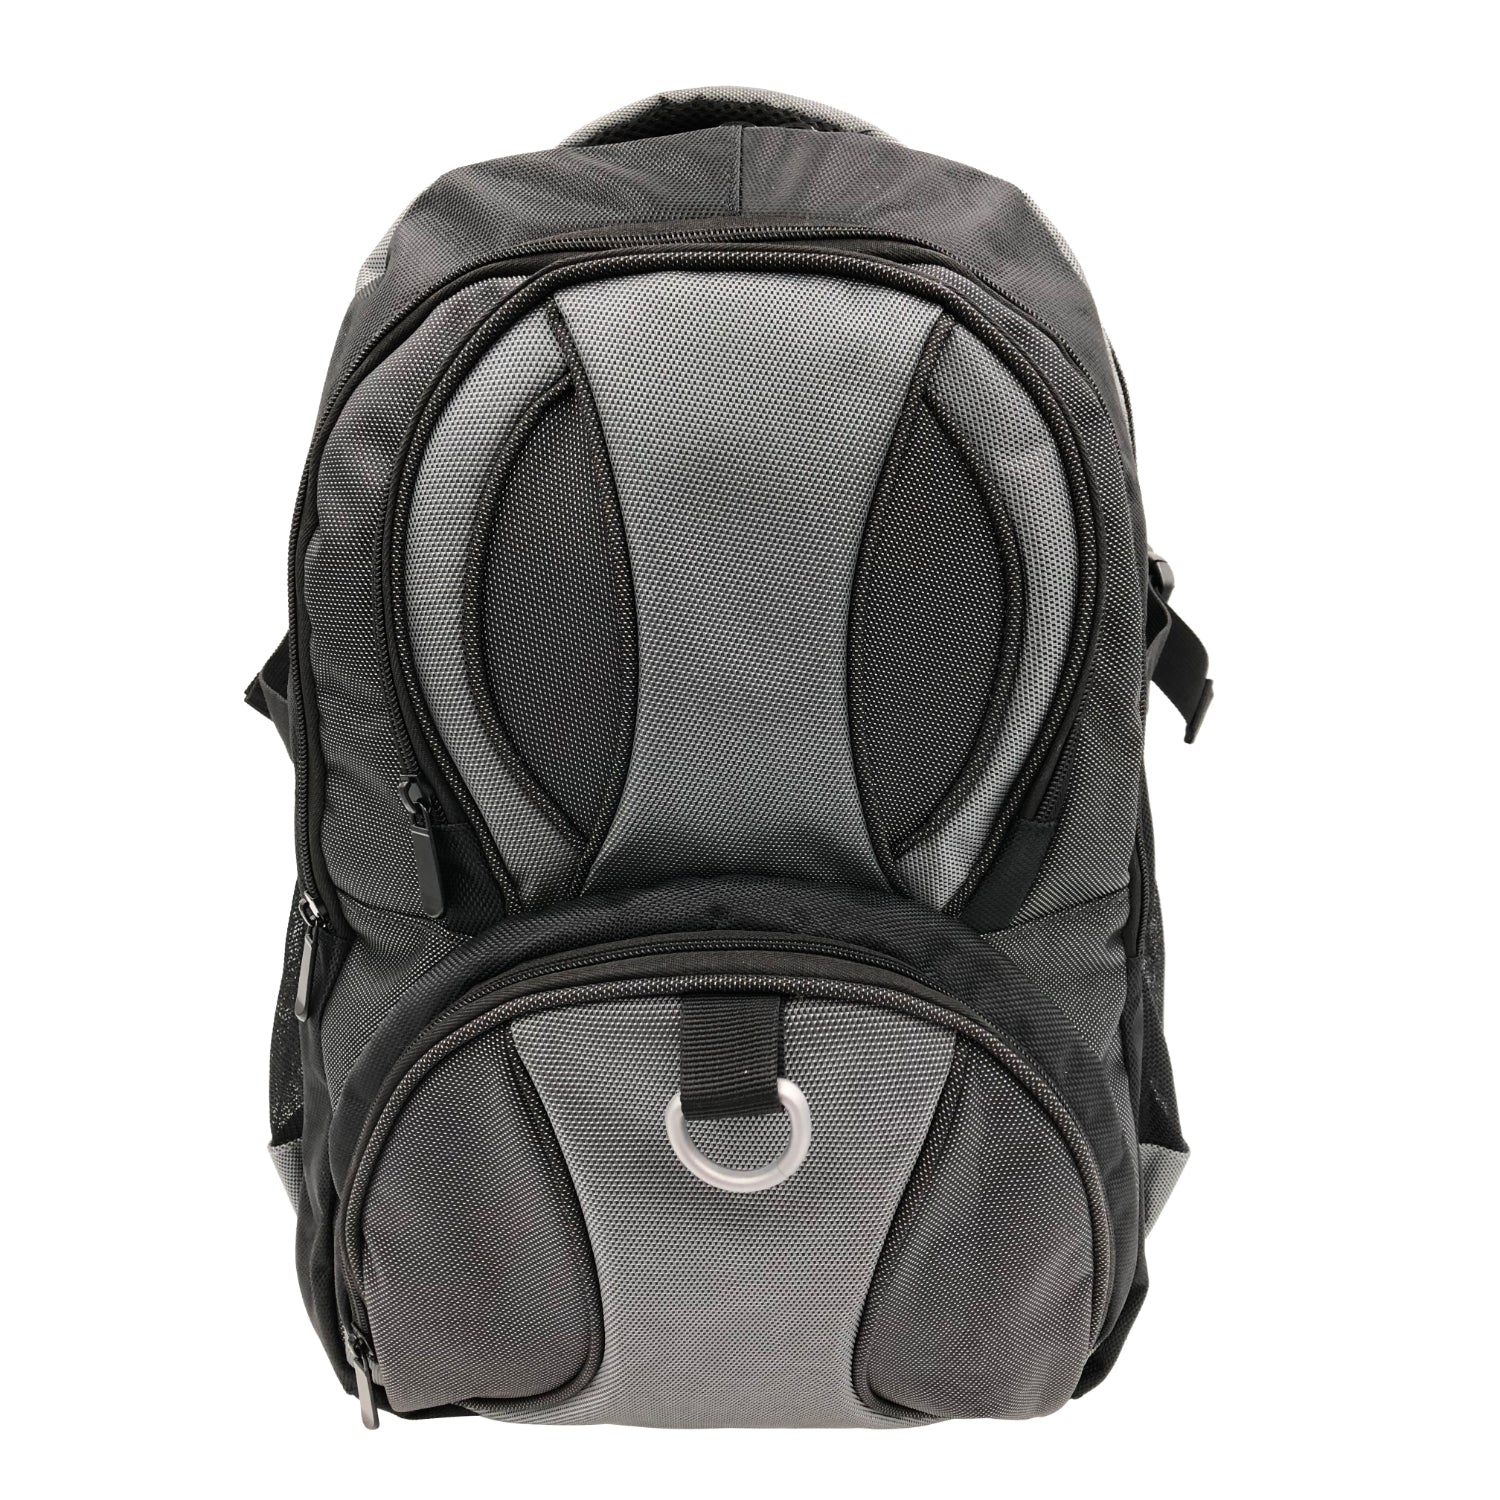 Large Travel Backpack with Multiple Compartments and Laptop Sleeve Holder